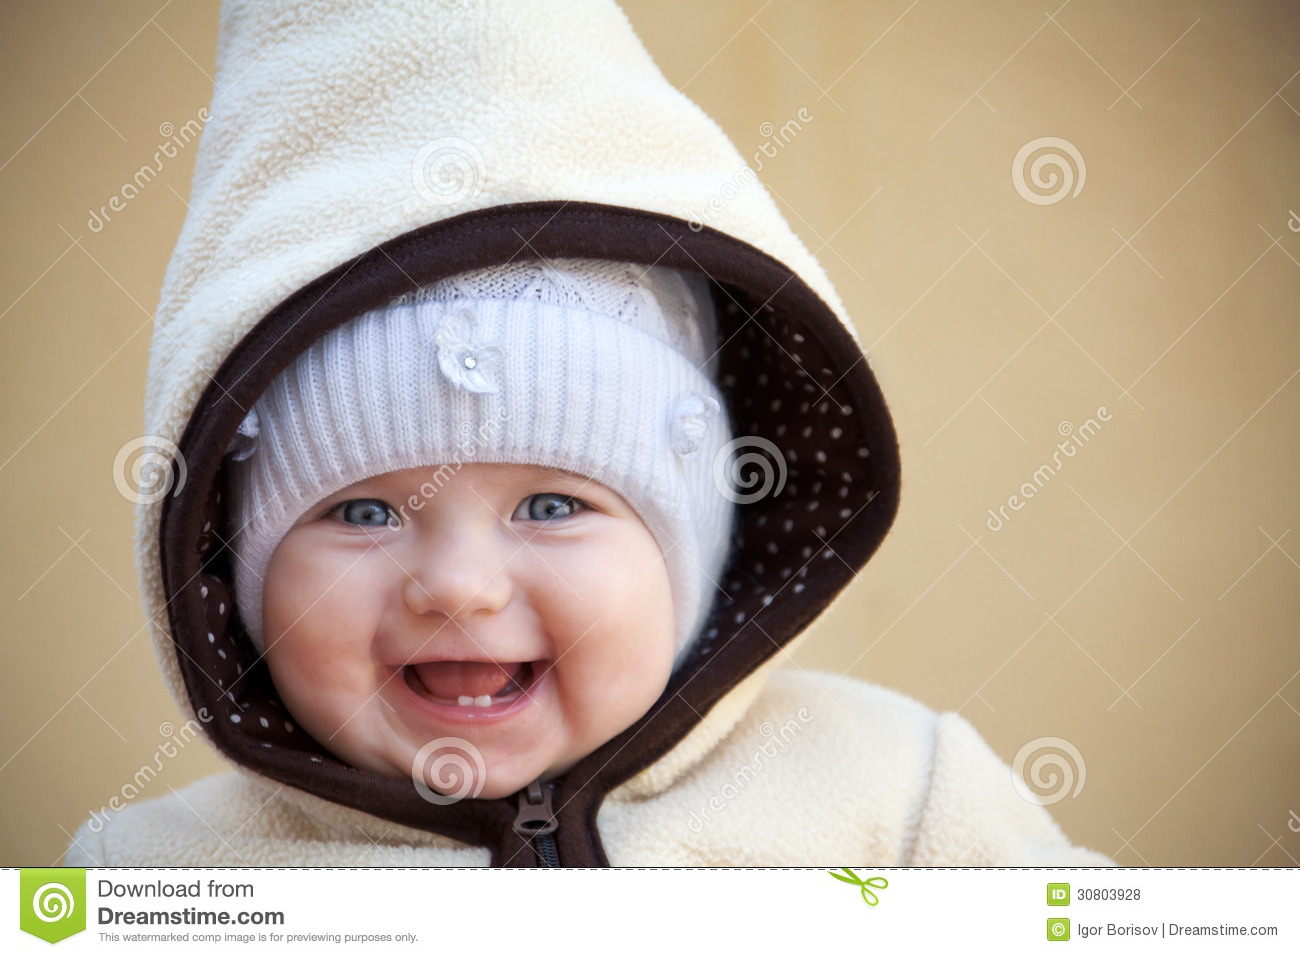 laughing cute baby girl outside stock photo - image of female, blue